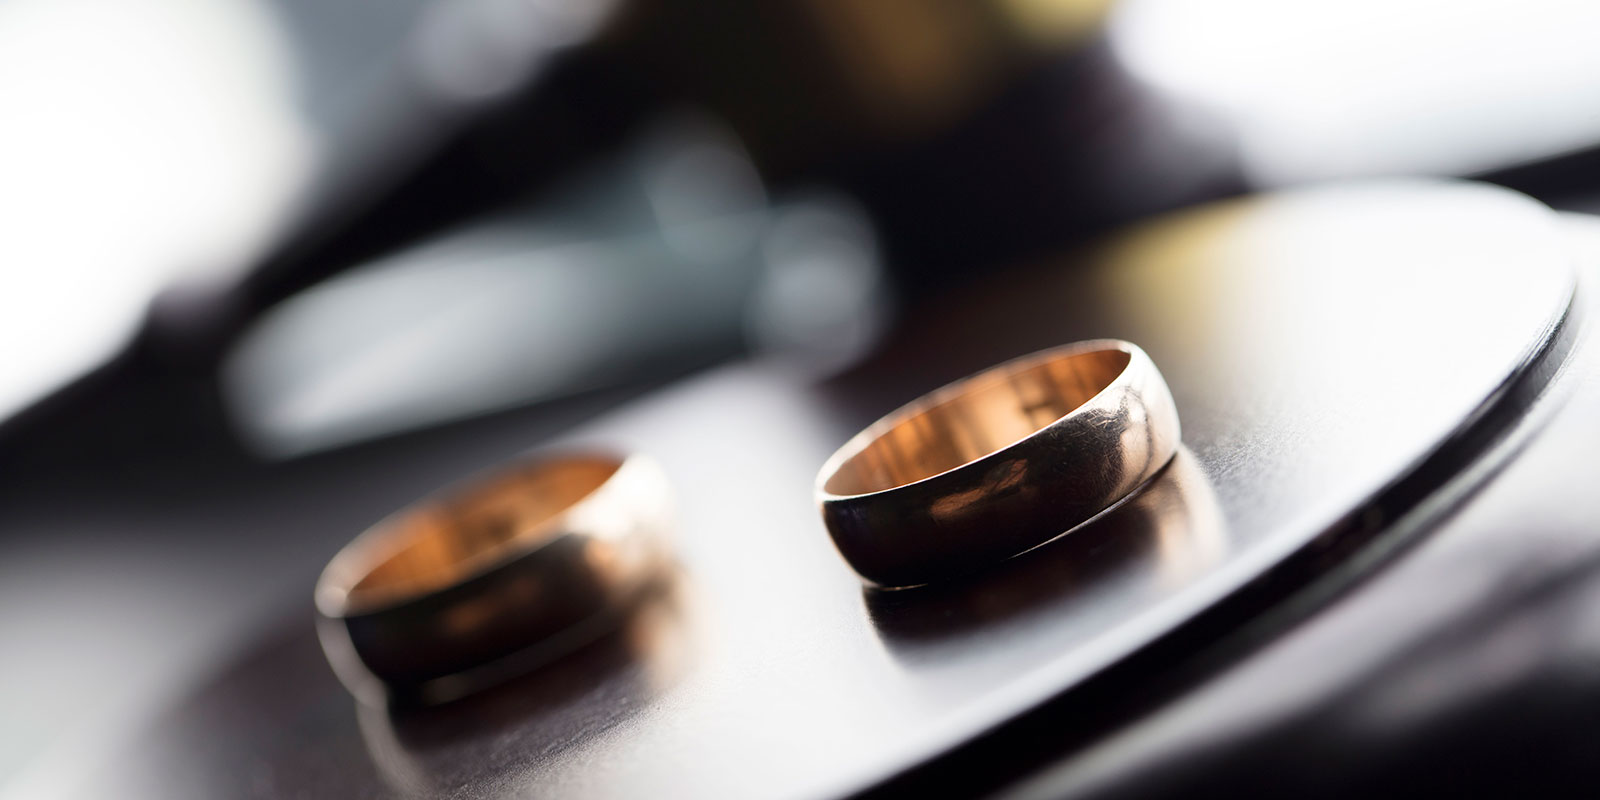 Two separated rings on a table.